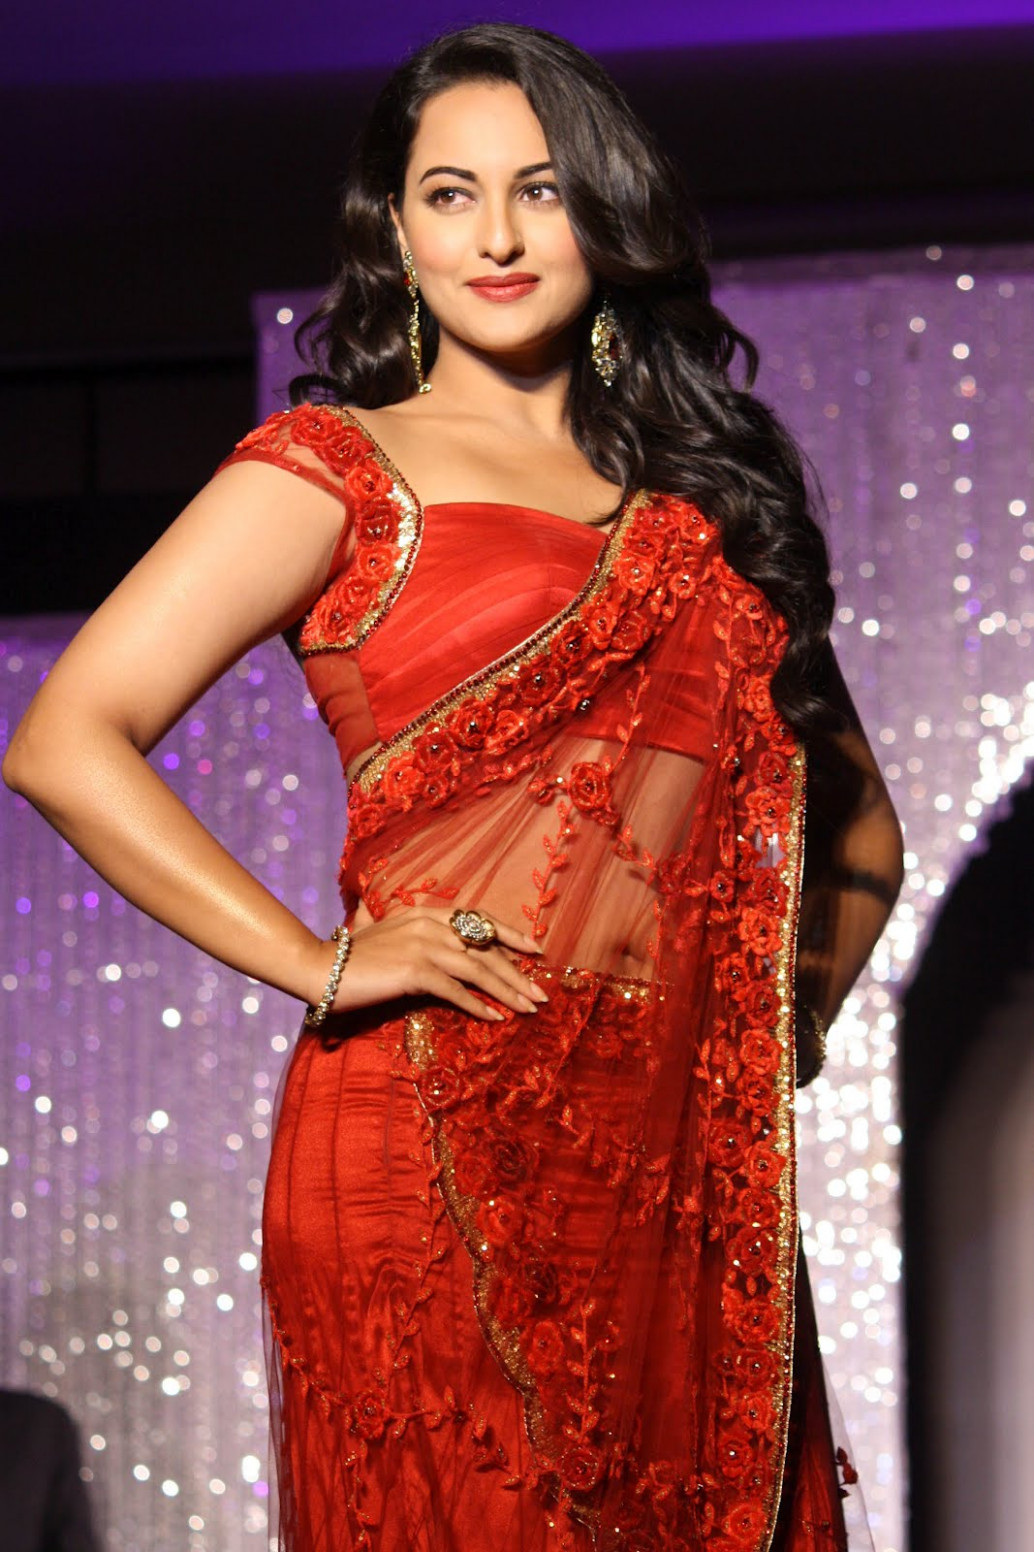 High Quality Bollywood Celebrity Pictures: Sonakshi Sinha